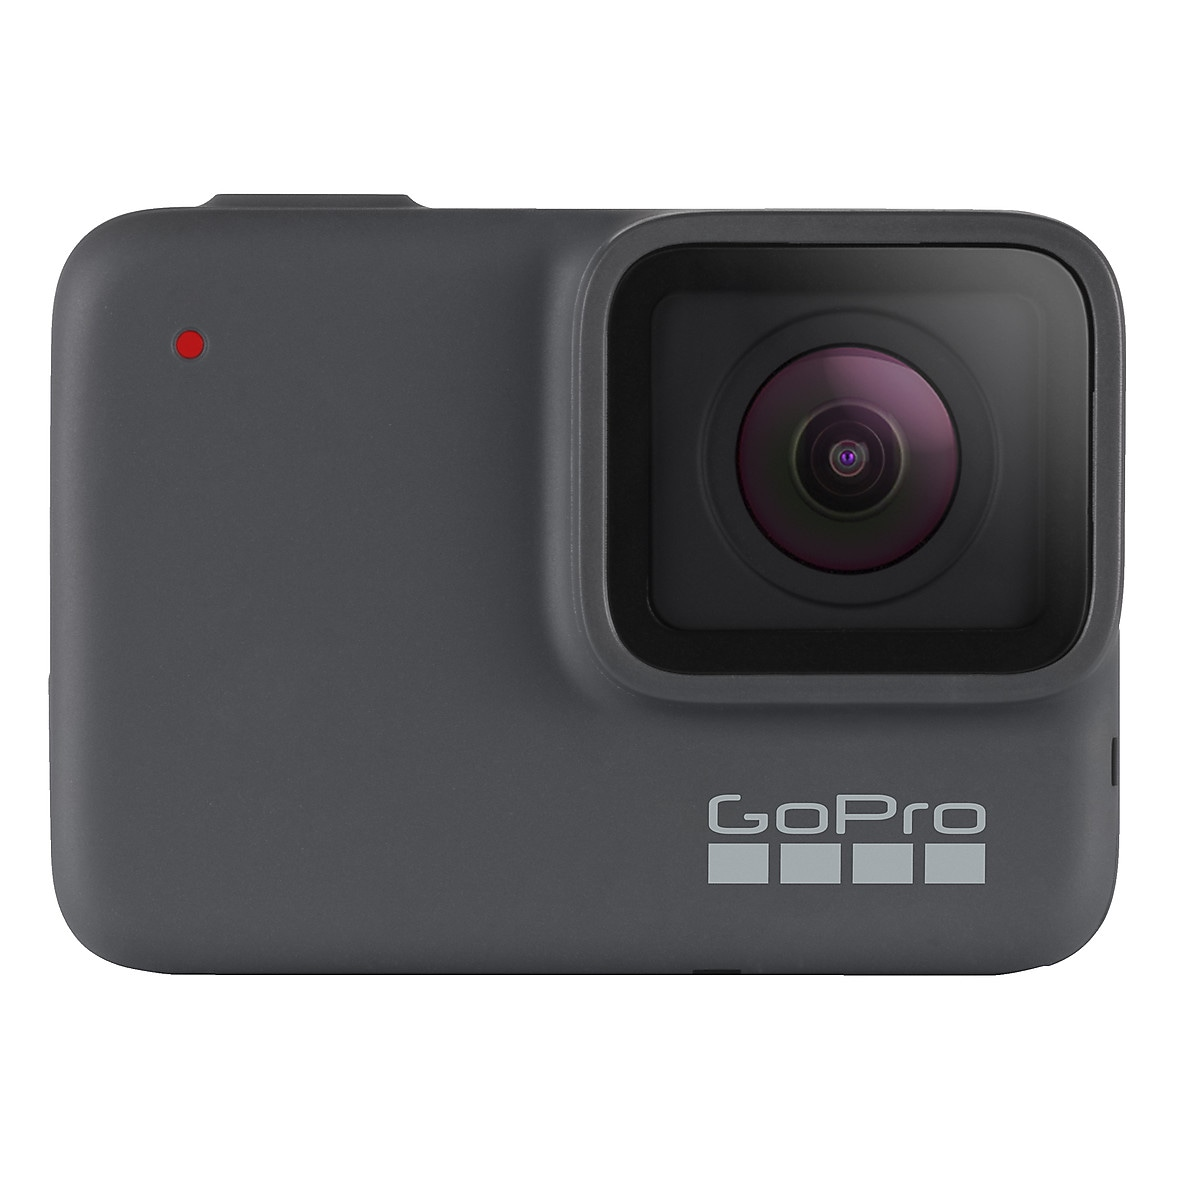 Actionkamera GoPro HERO7 Silver